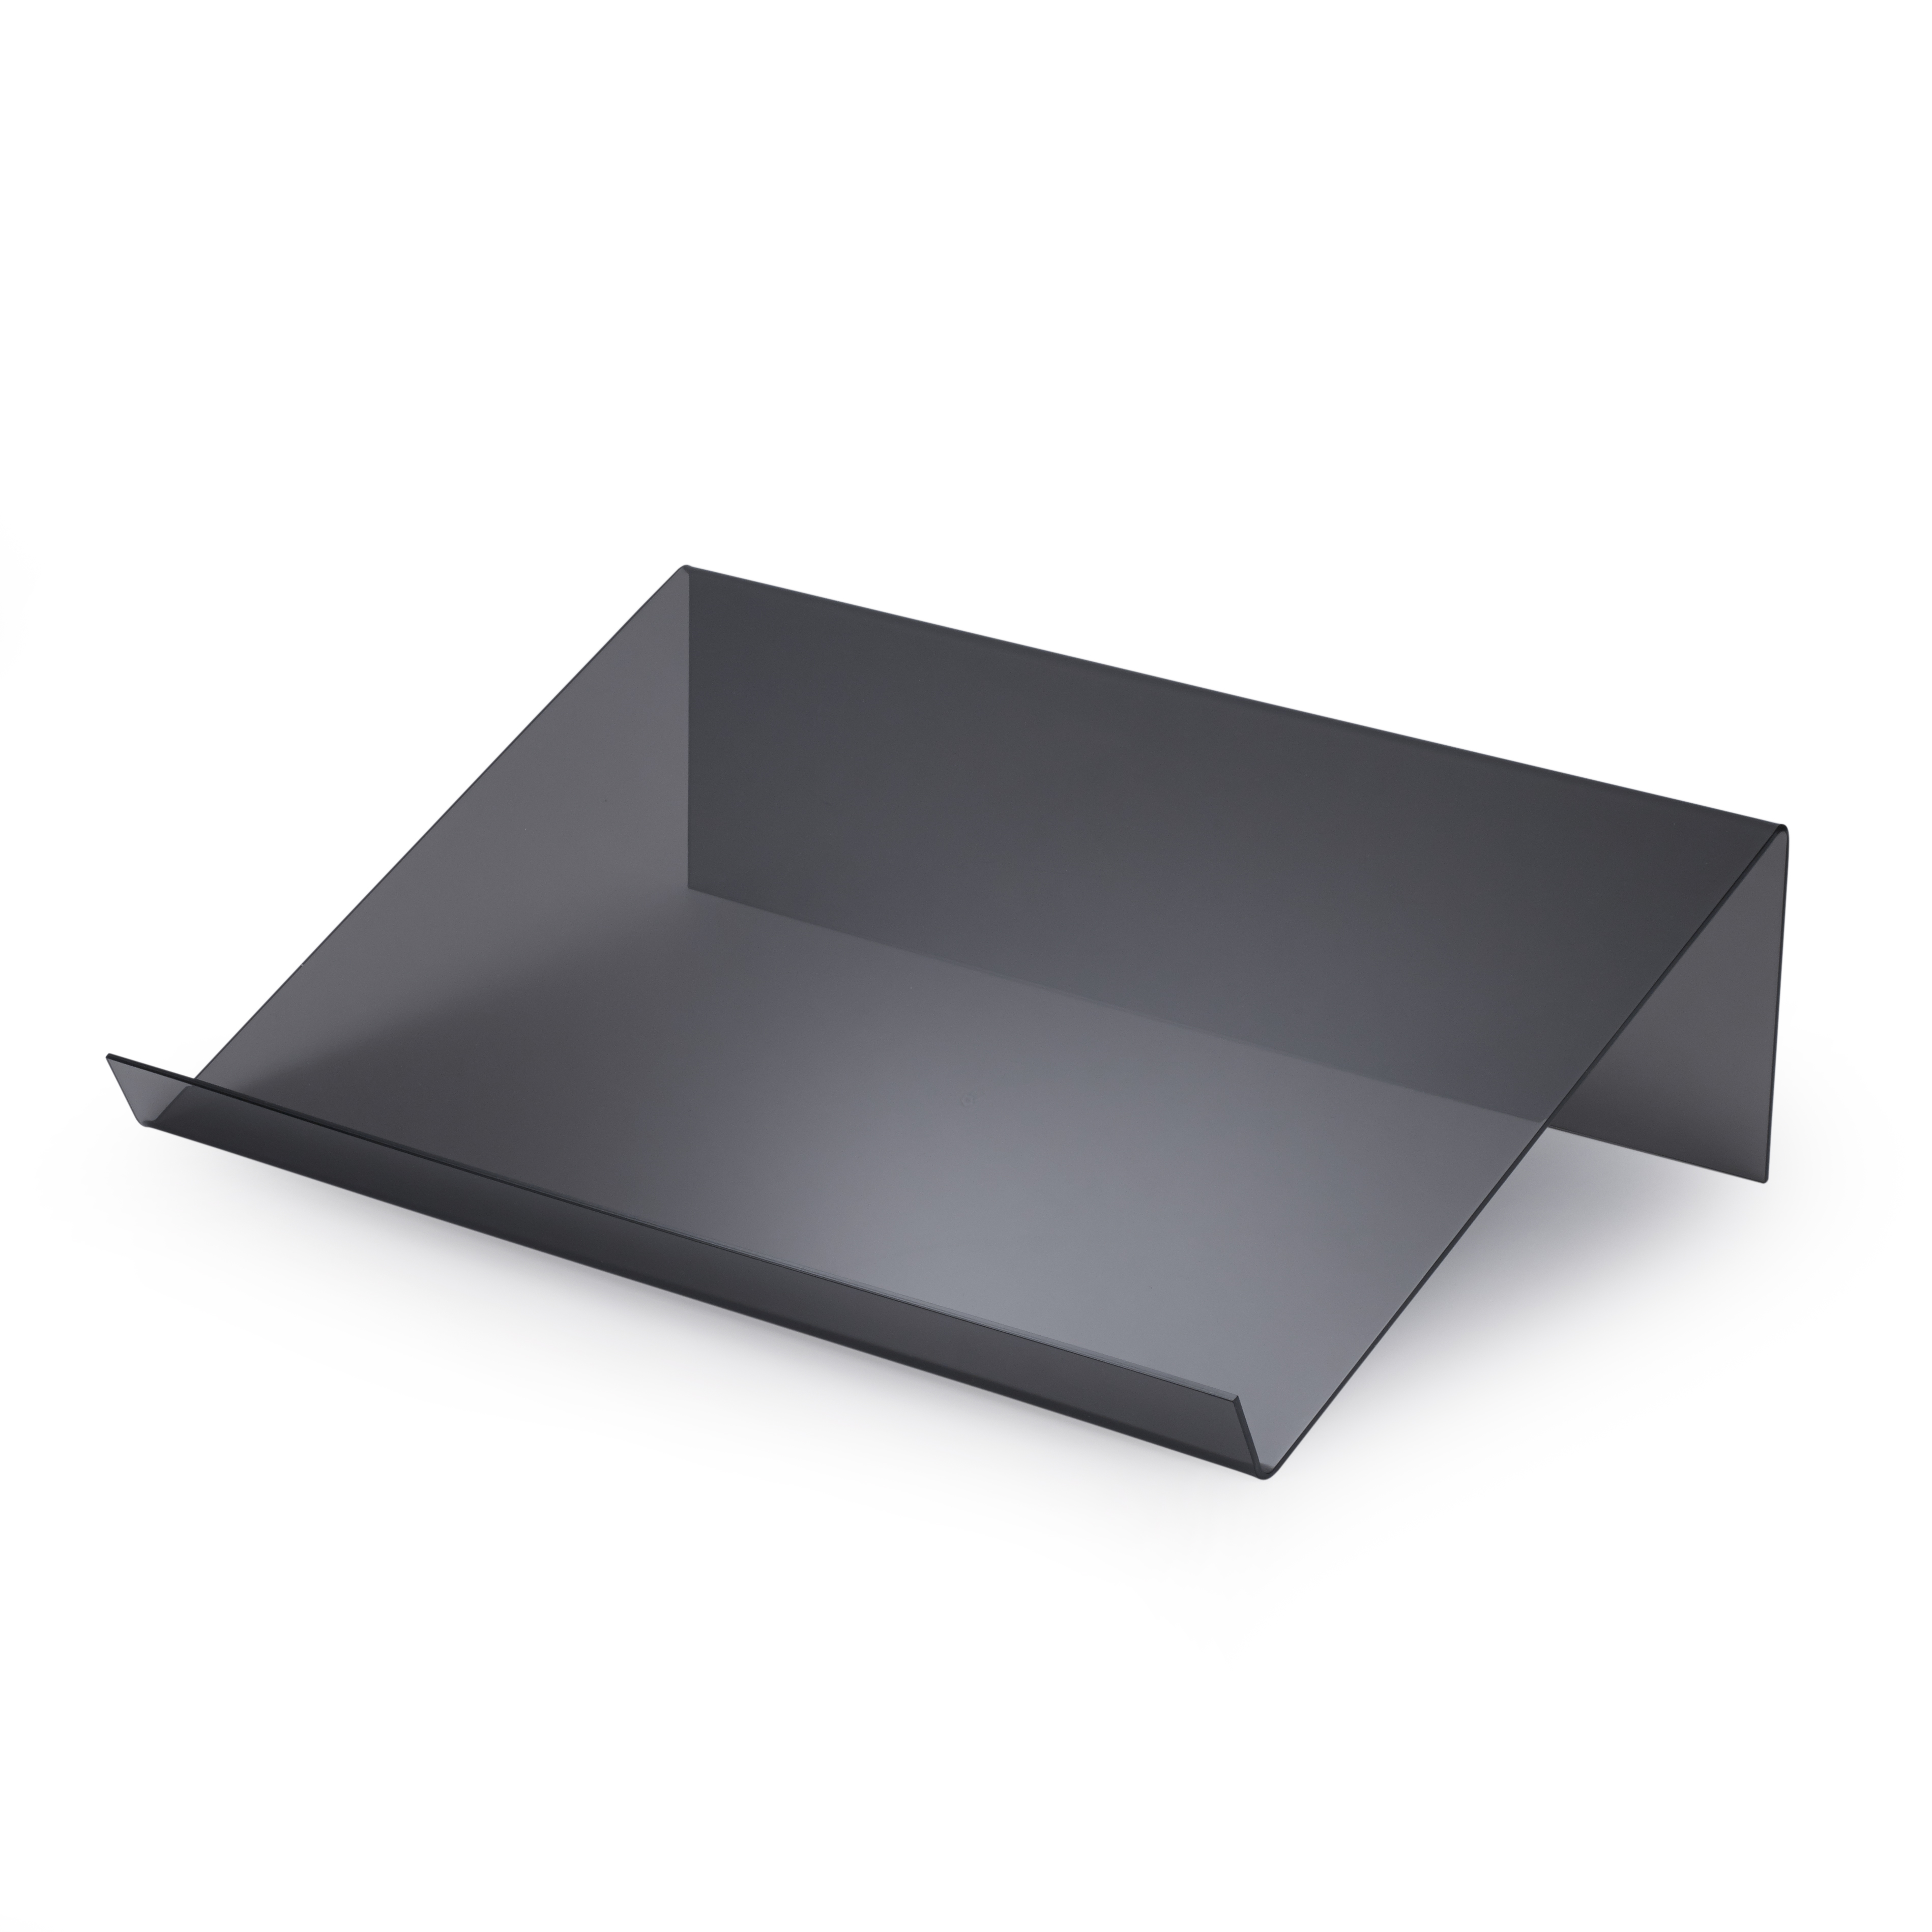 Binder Stands And Holders